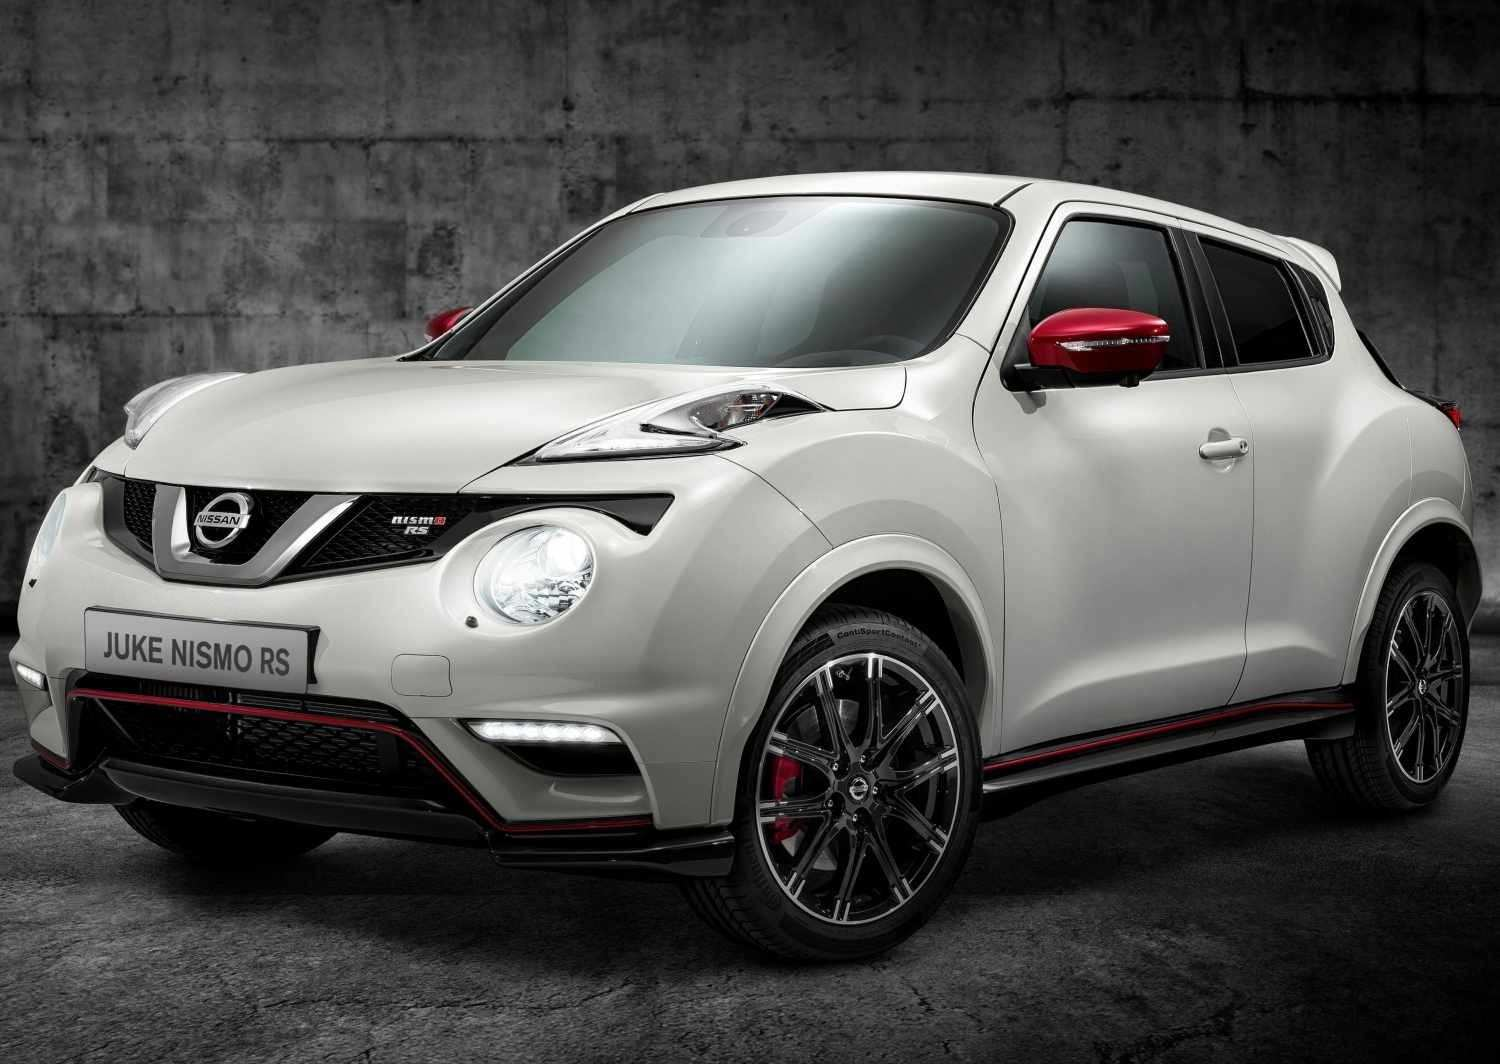 59 Concept of New 2019 Nissan Juke Review Concept Spesification by New 2019 Nissan Juke Review Concept